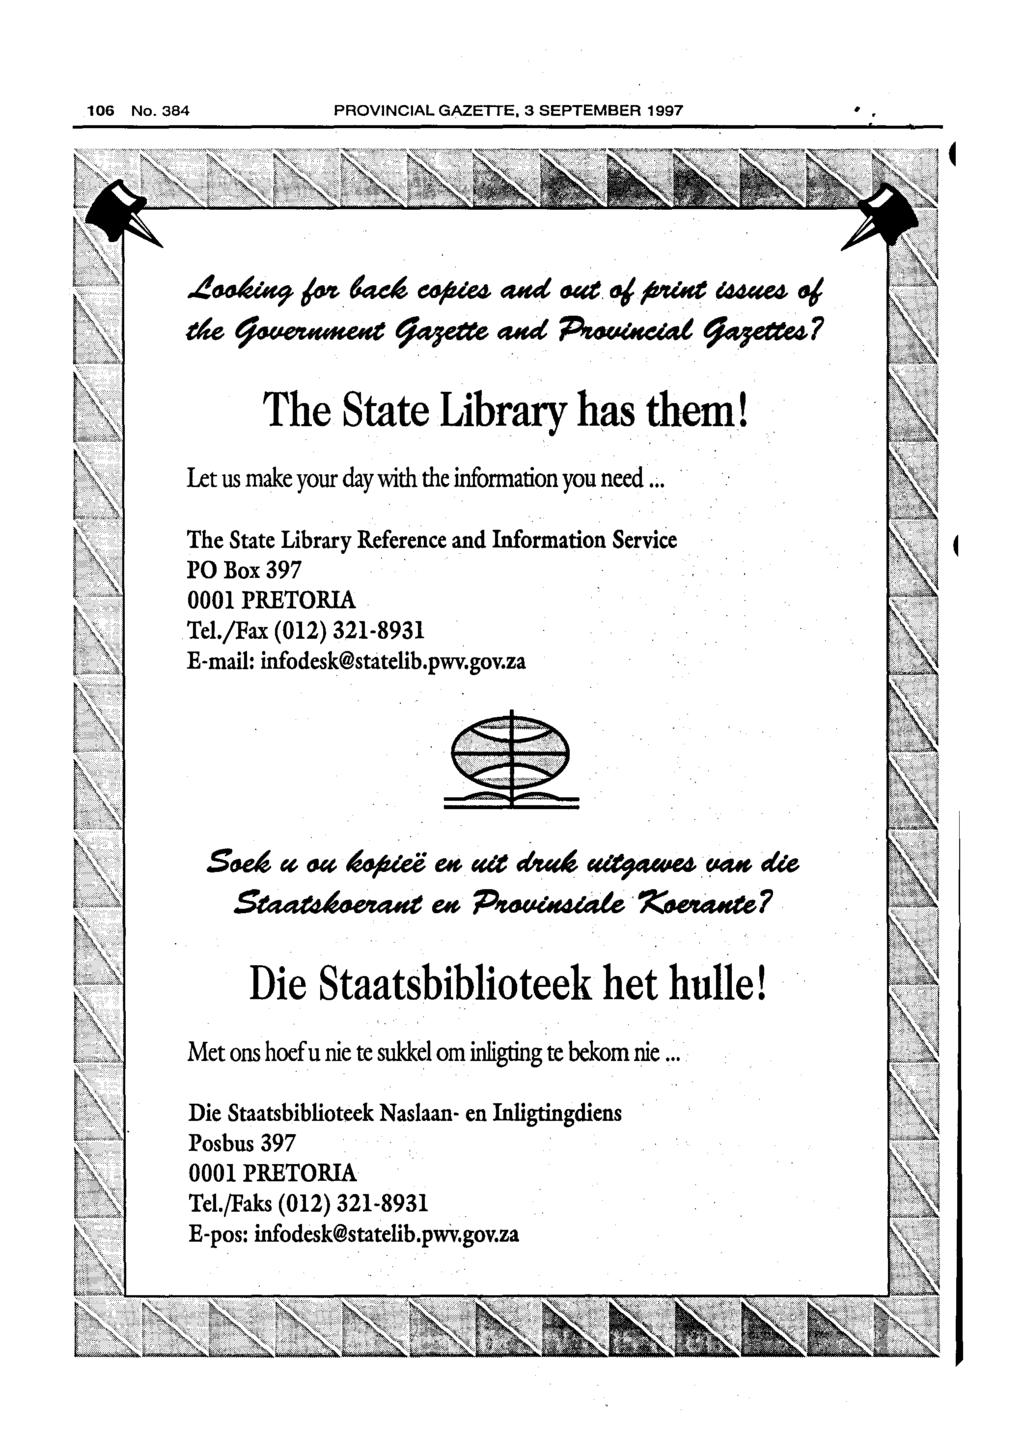 106 No. PROVINCIAL GAZETTE, 3 SEPTEMBER 1997 ~~ /M-. d4c~ ~ ad. tutt. fl/.ft'uht l44«e4- t1j. tm~~ad.~~~ The State Library has them! Let us make your day with the infonnation you need.